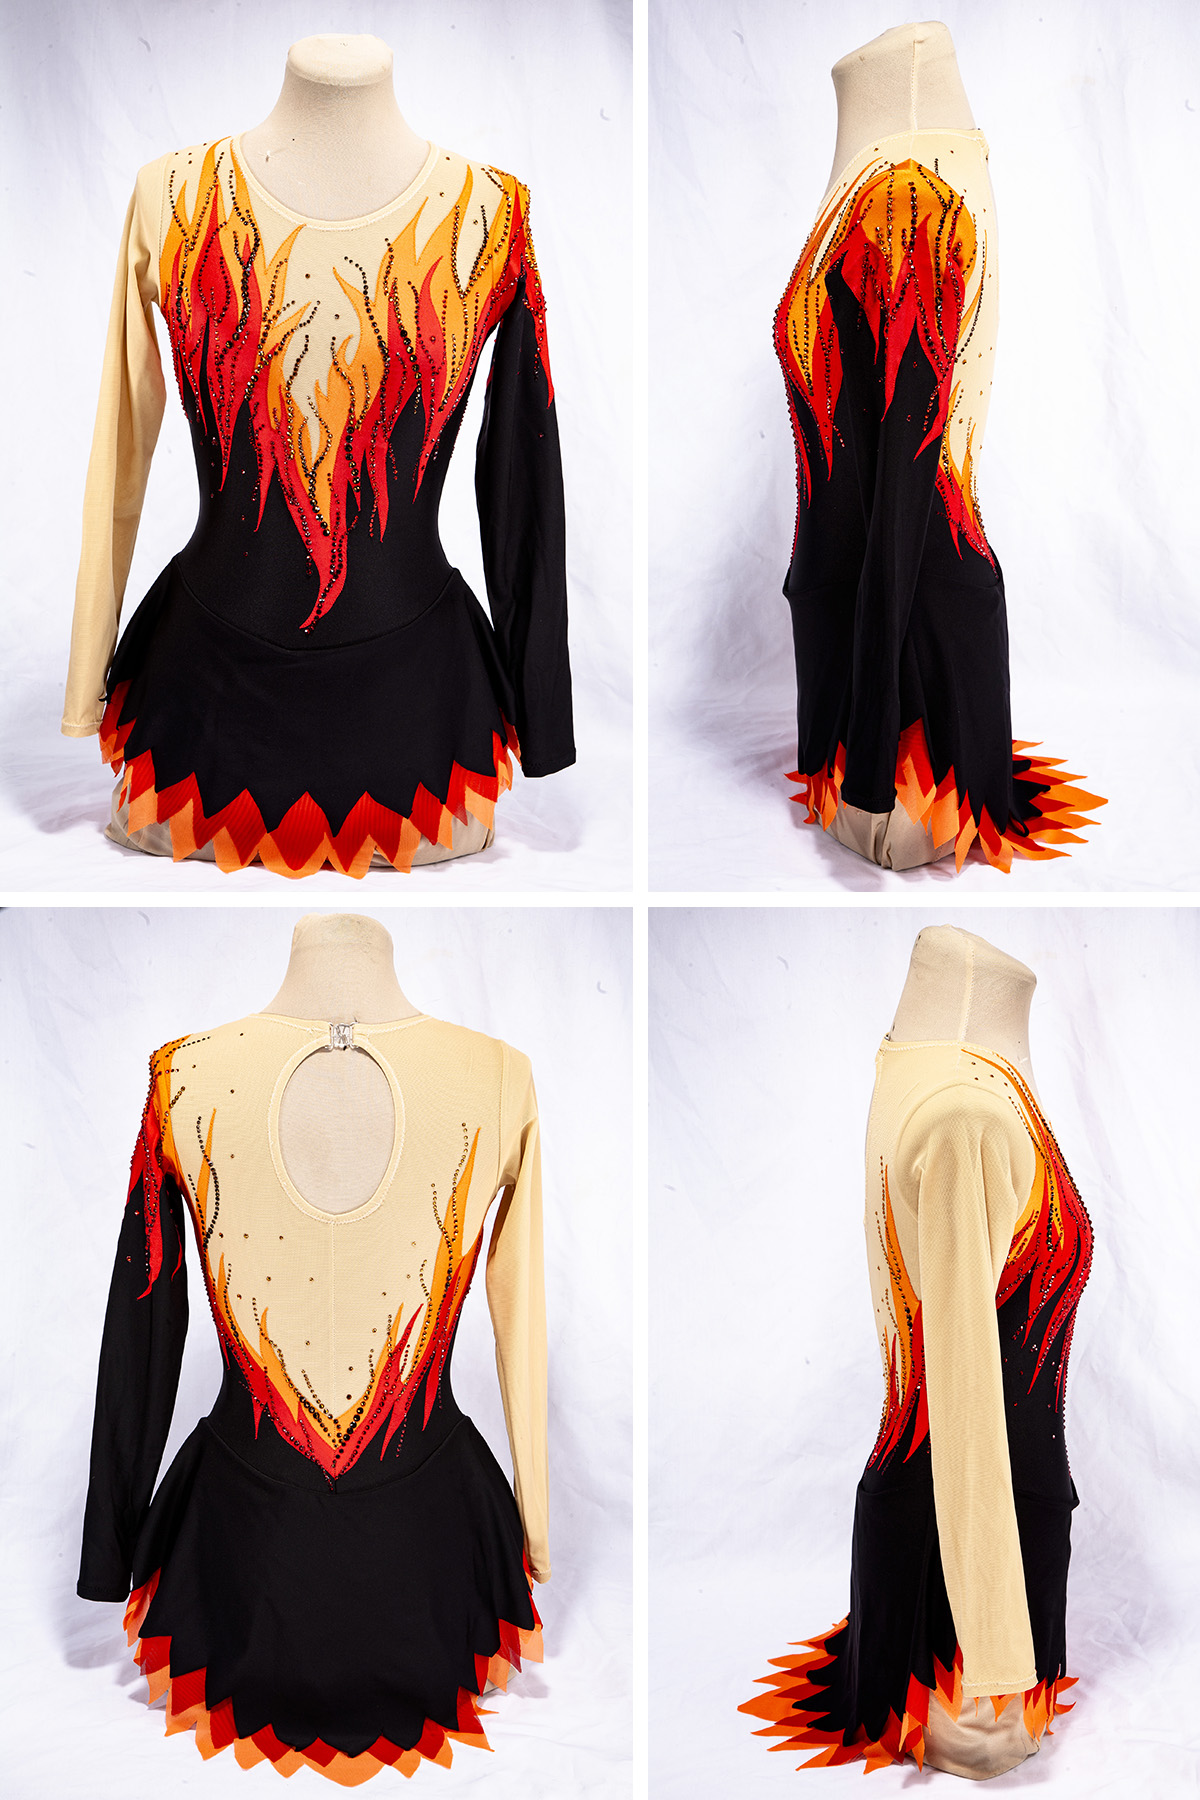 A 4 part compilation image showing front, back, and side views of the flames skating dress. The main body is black, one sleeve and the shoulders, upper chest, and one sleeve is beige, and a bright red and orange flames design separates the beige and black areas. In this version, the dress has been heavily crystalled.